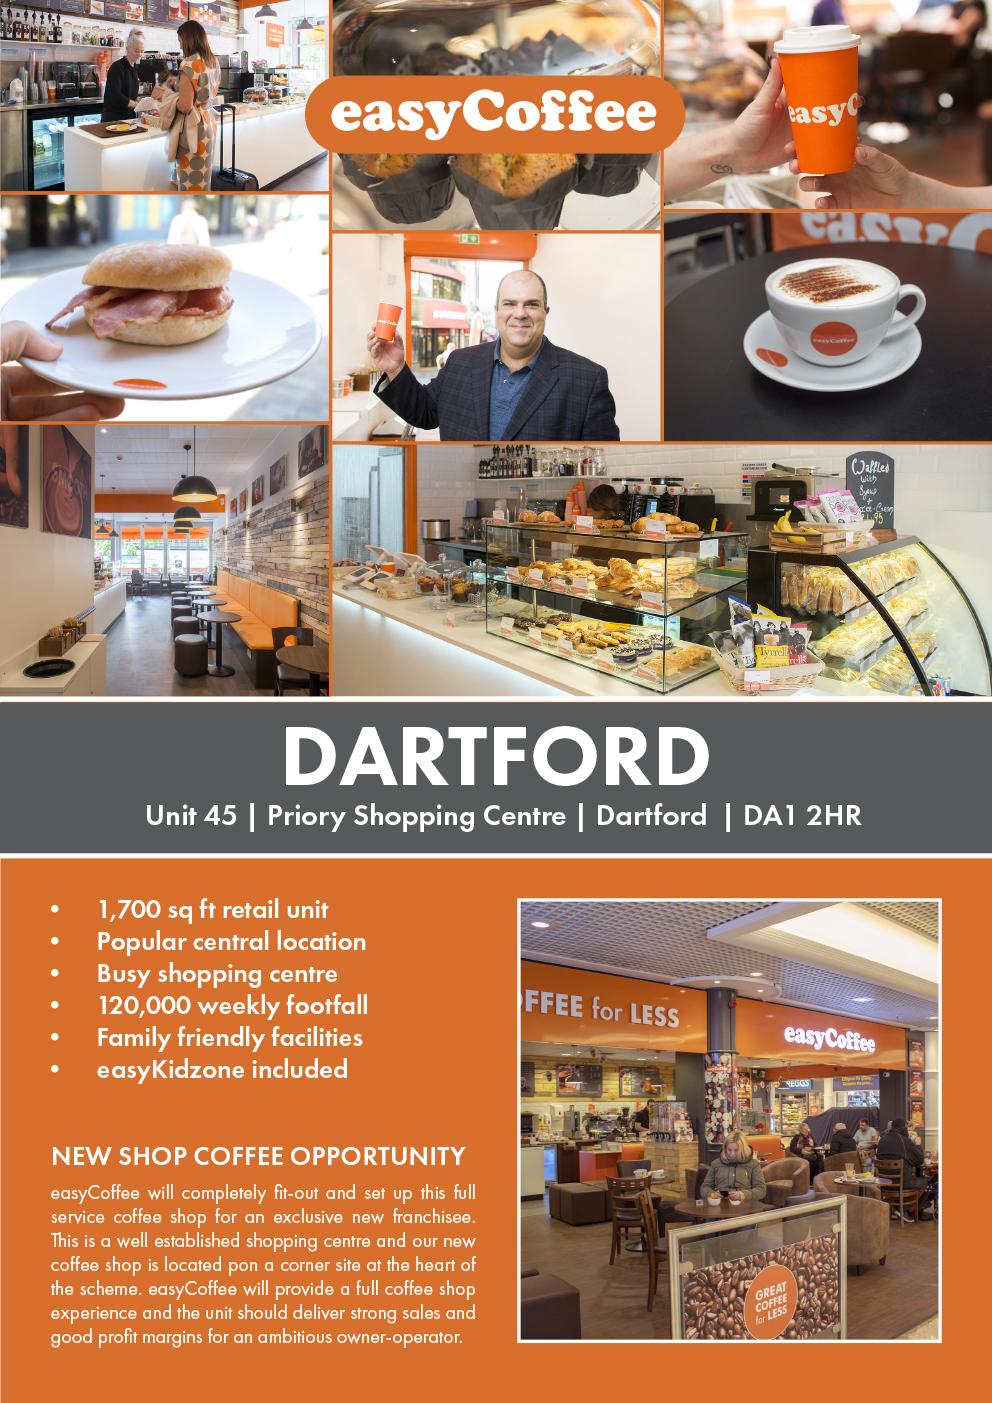 easyCoffee shop_Dartford_1.jpg